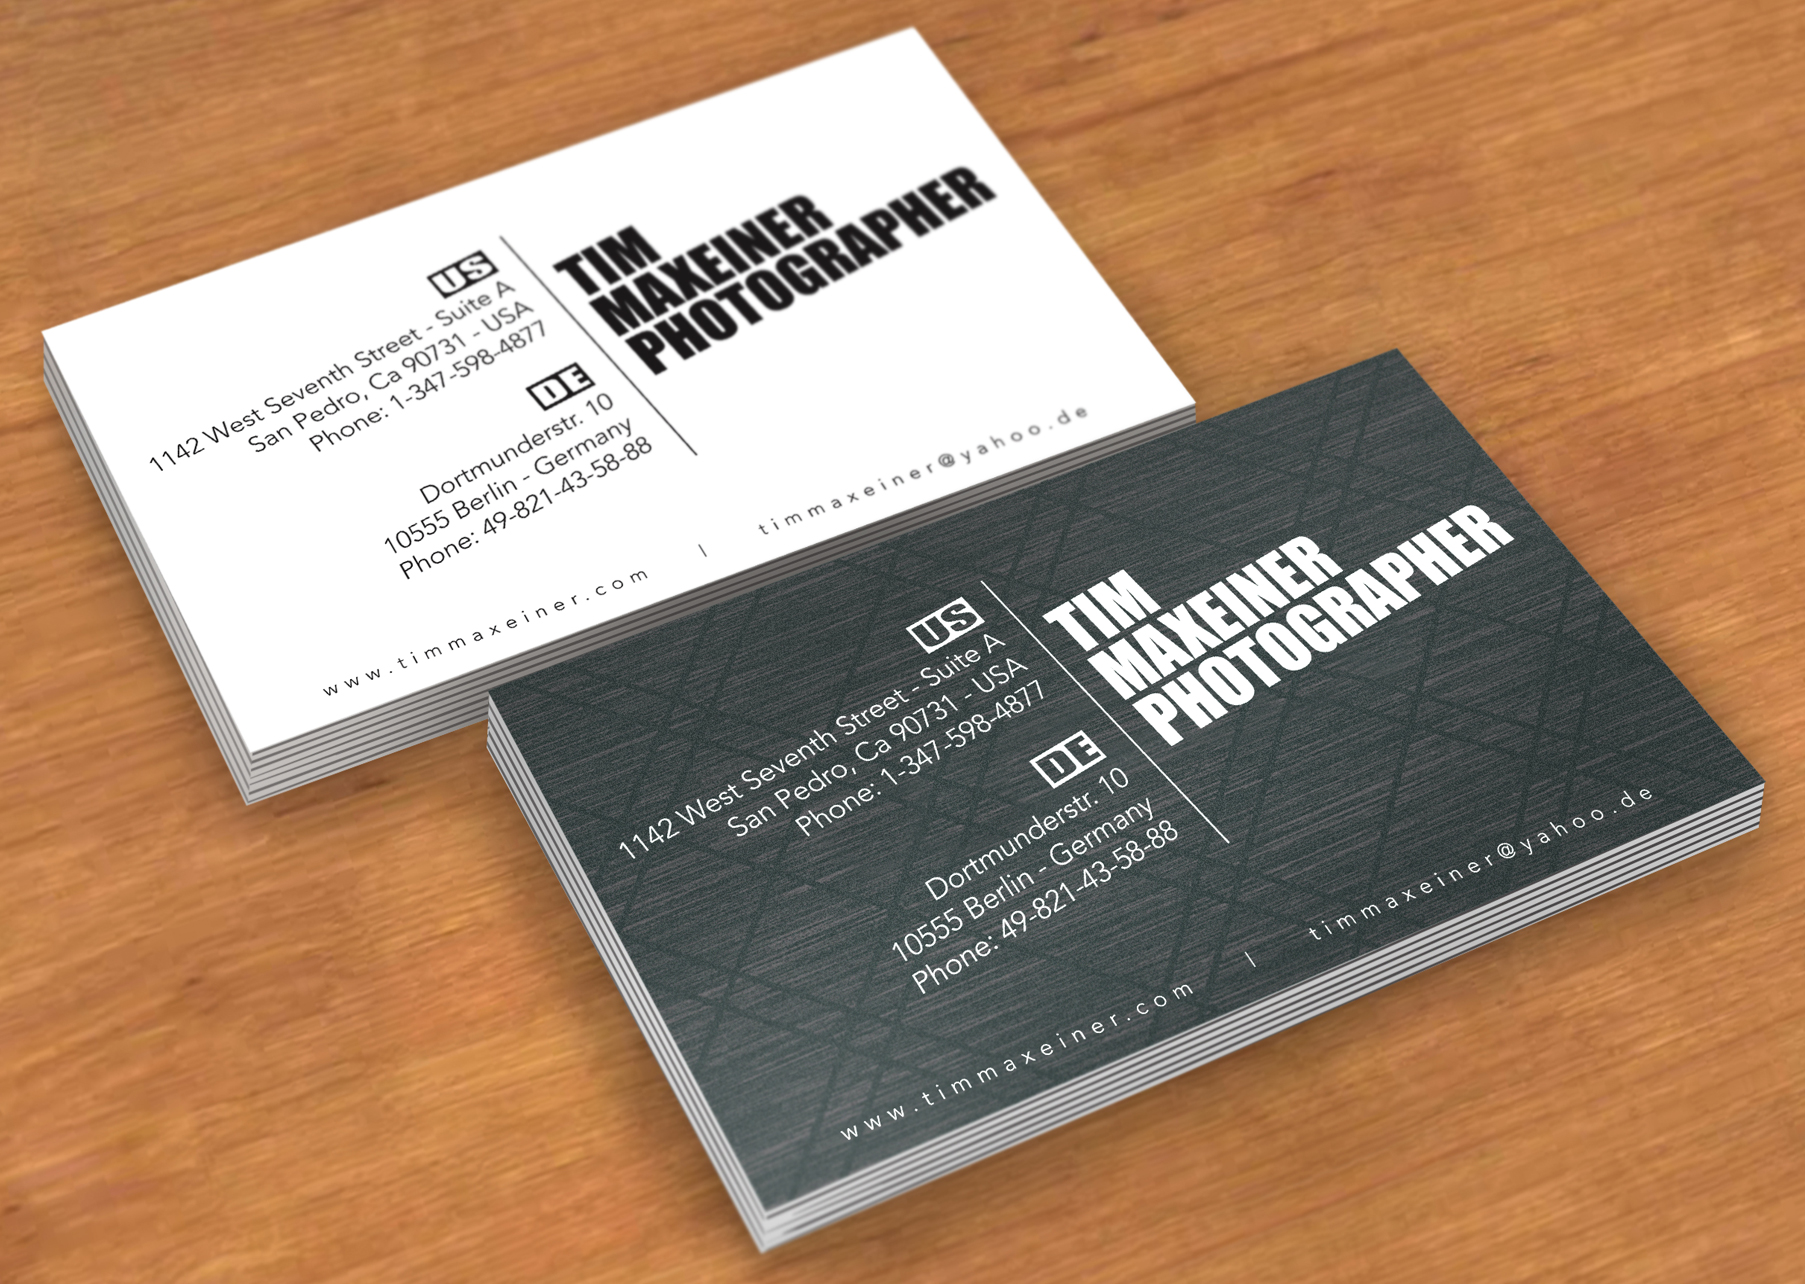 Business cards p charles fisher design studios tim maxeiner photographer san pedro ca berlin germany reheart Gallery